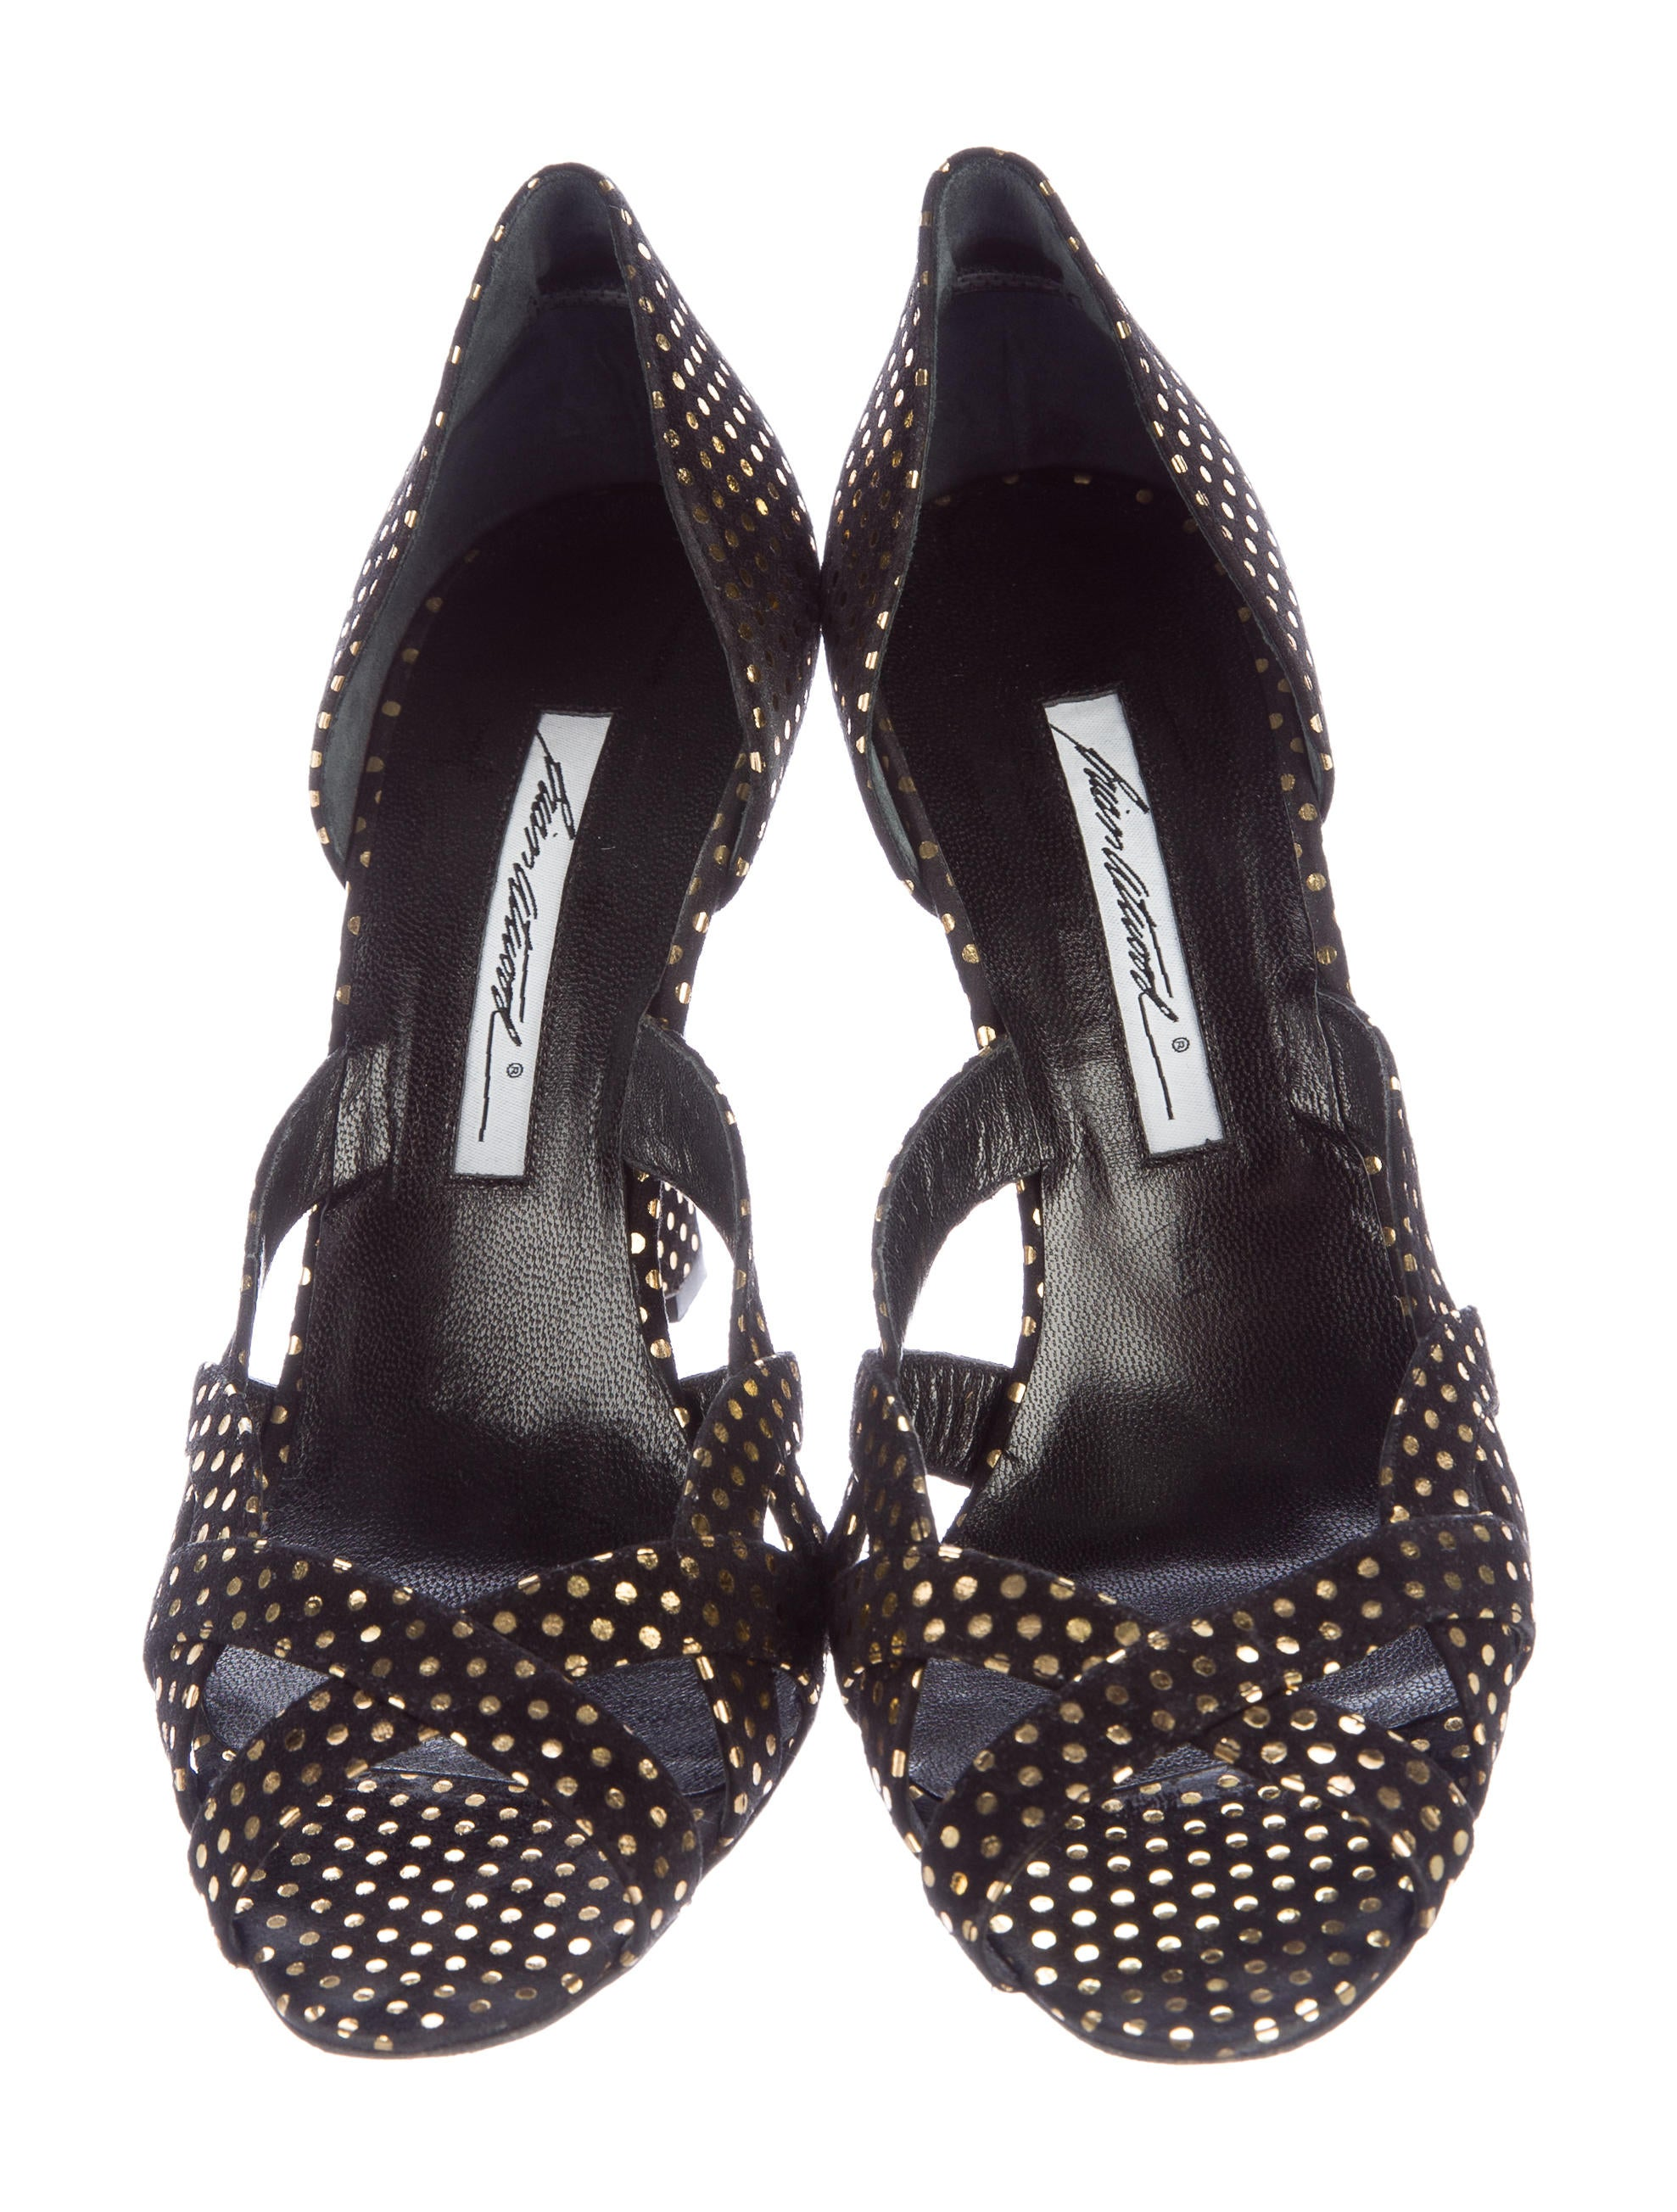 brian atwood polka dot peep toe wedges shoes bri23763